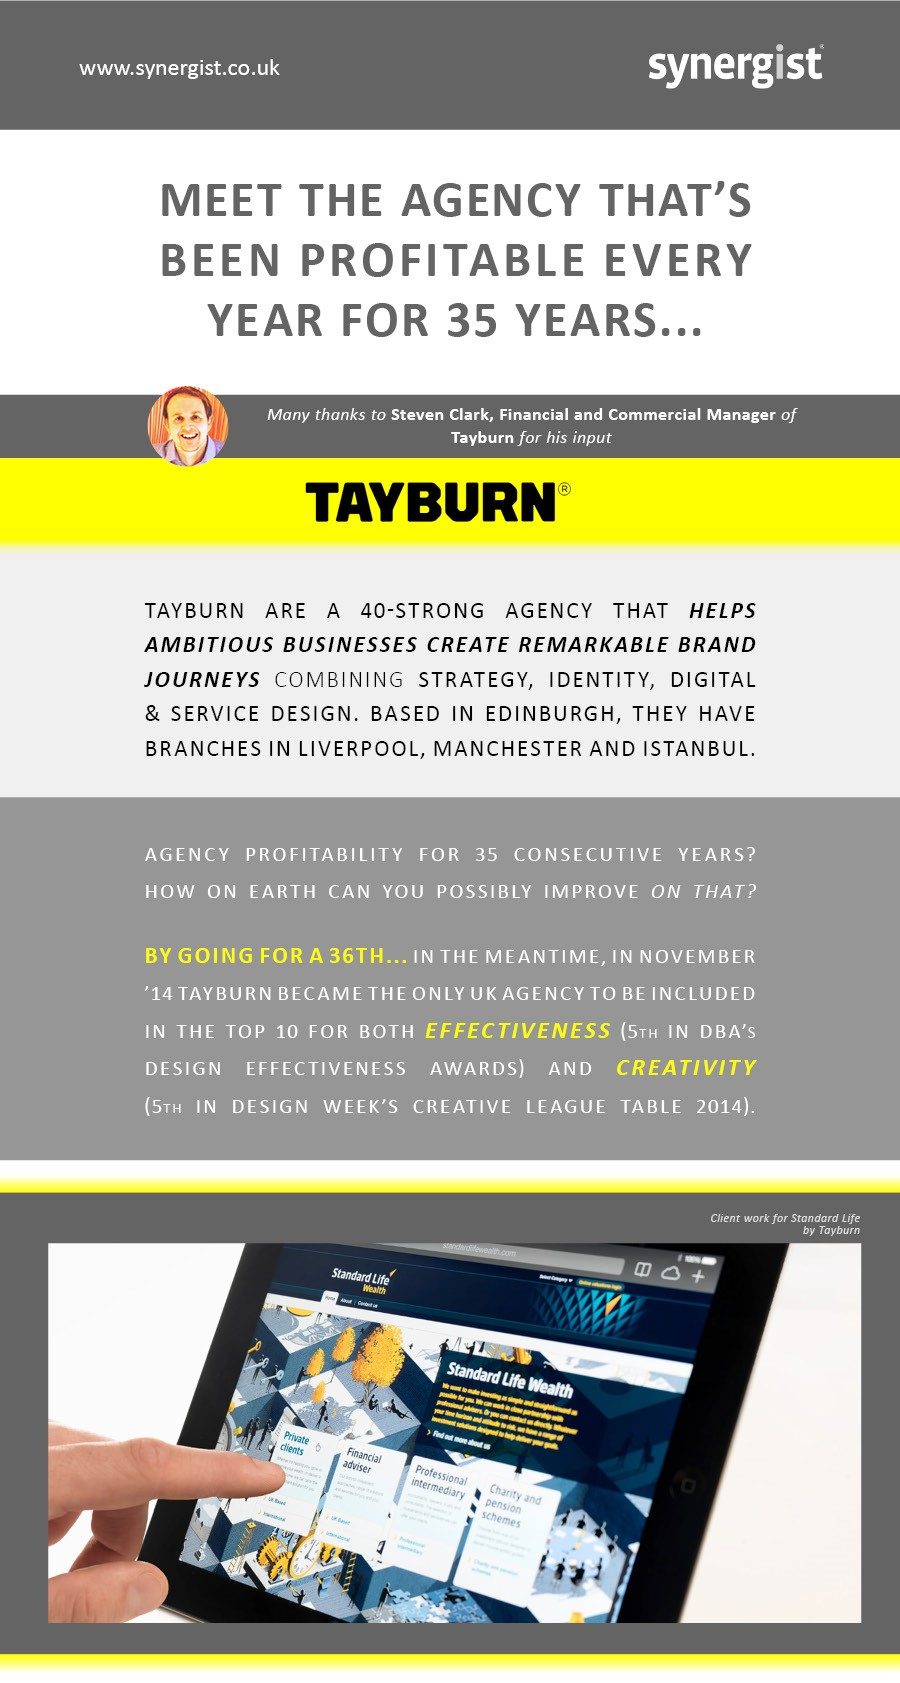 Tayburn user story infographic